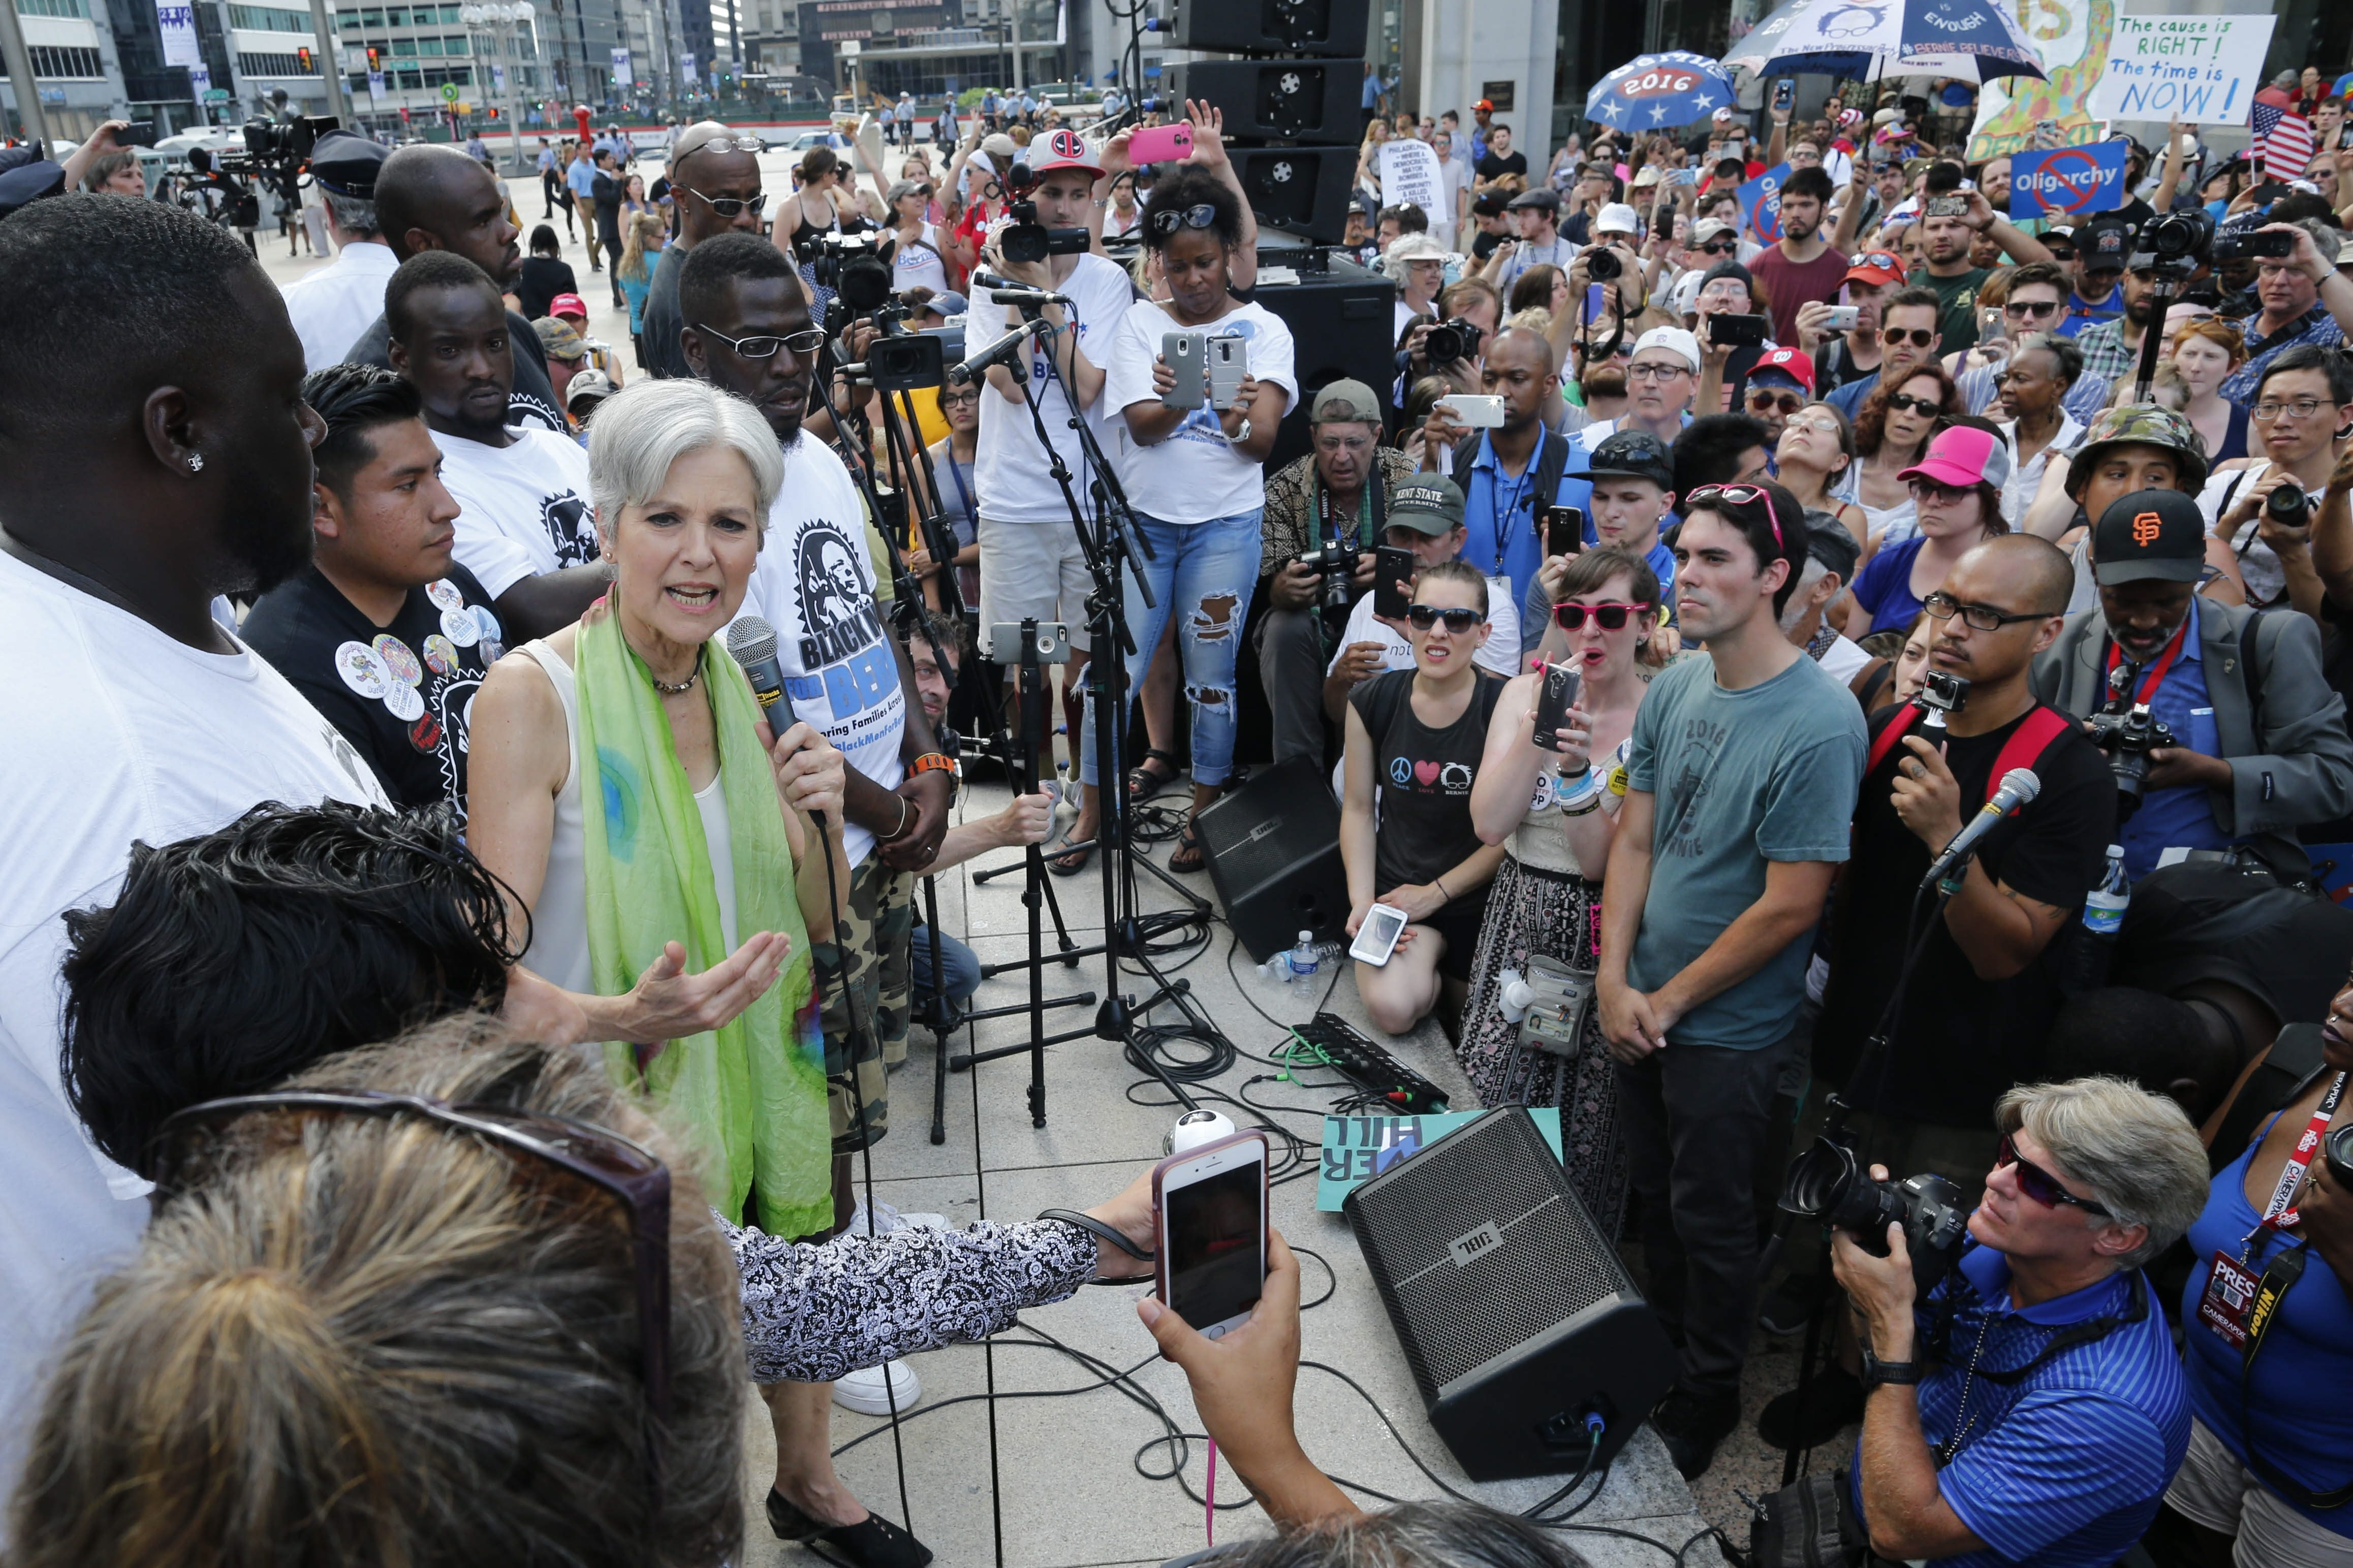 Green Party candidate for president Jill Stein, in green scarf, speaks on stage at a Black Men for Bernie rally in Thomas Paine Plaza in Philadelphia, Wednesday, July 27, 2016.  (Photo by Derek Gee)